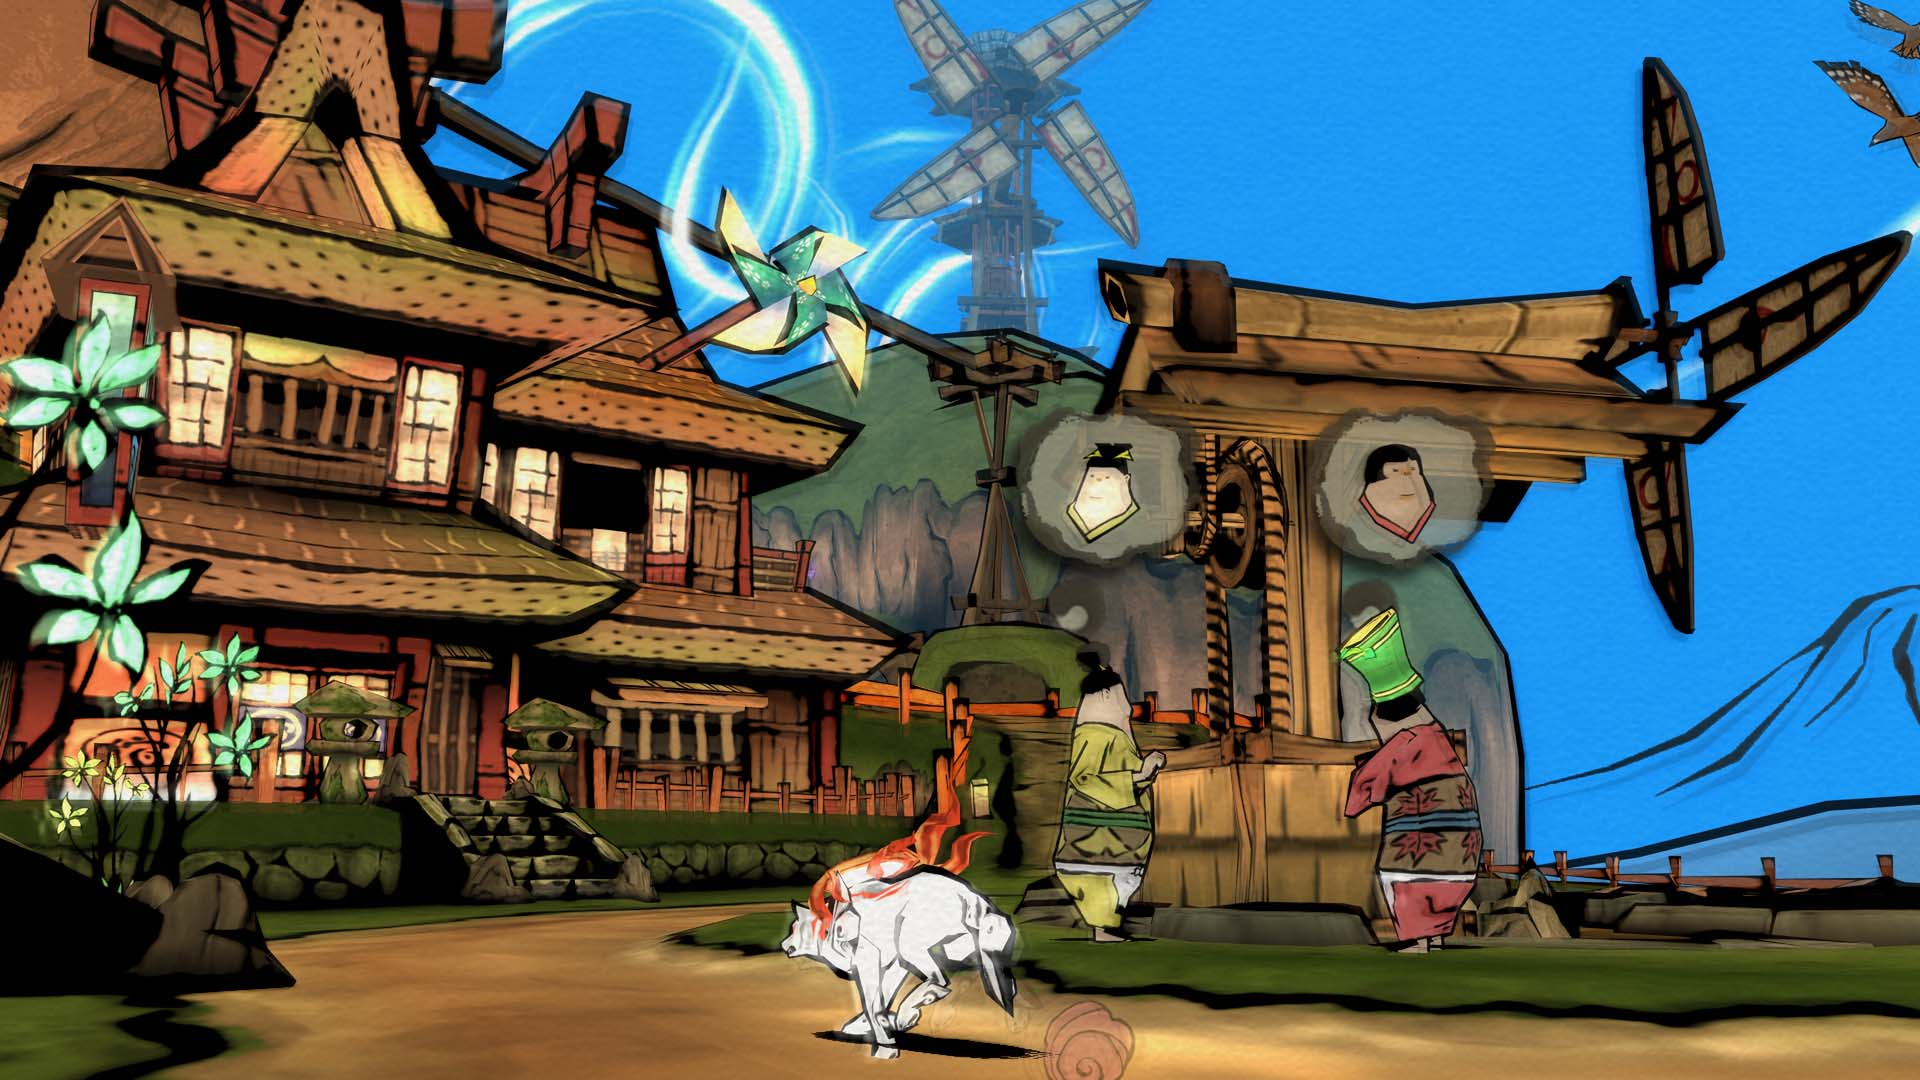 The original designers of Okami want to make a sequel